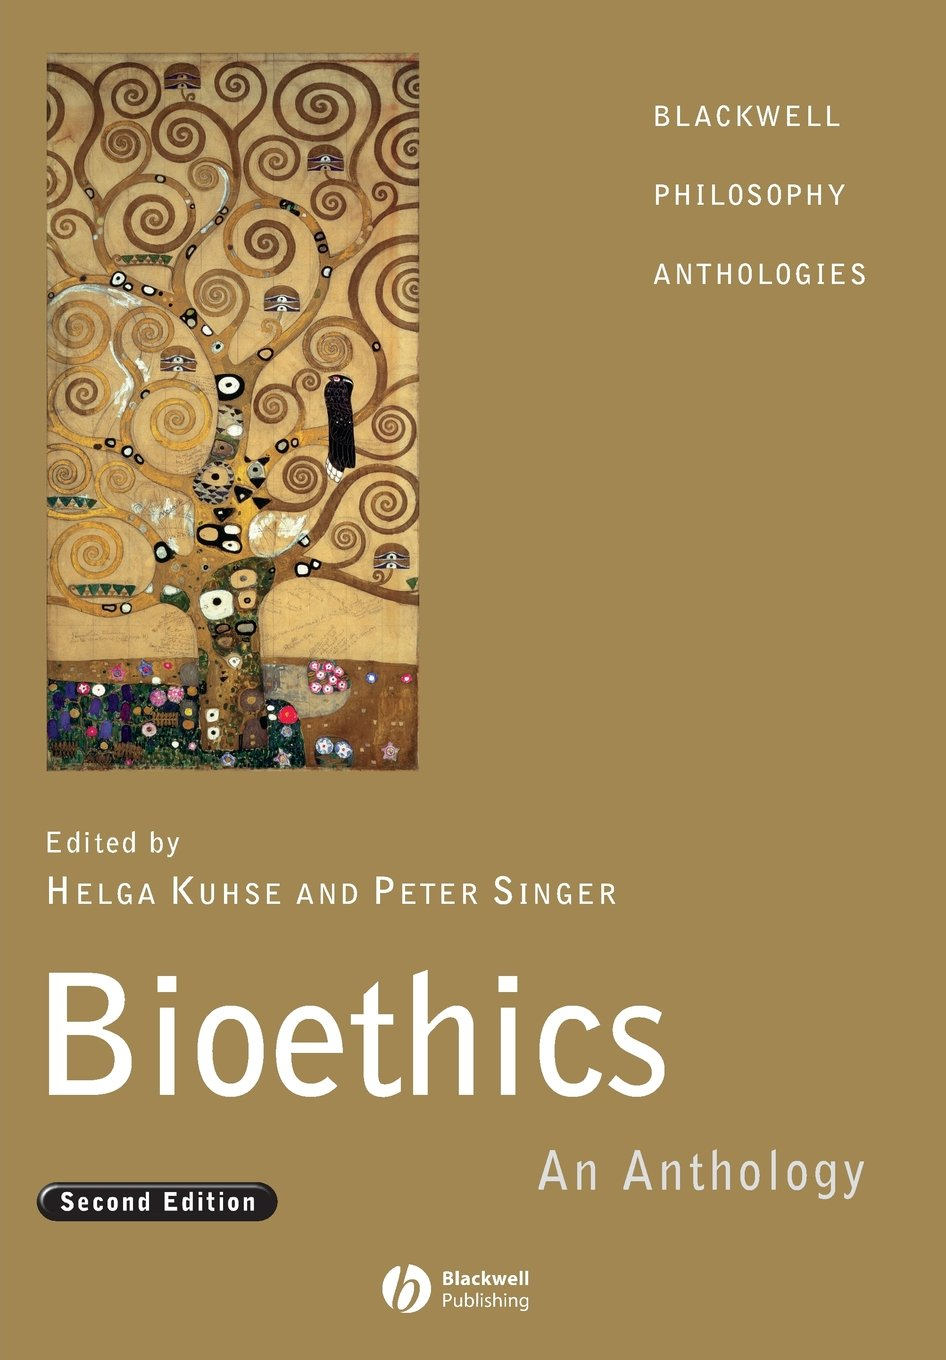 bioethics e an anthology blackwell philosophy anthologies bioethics 2e an anthology blackwell philosophy anthologies amazon co uk kuhse singer 9781405129480 books